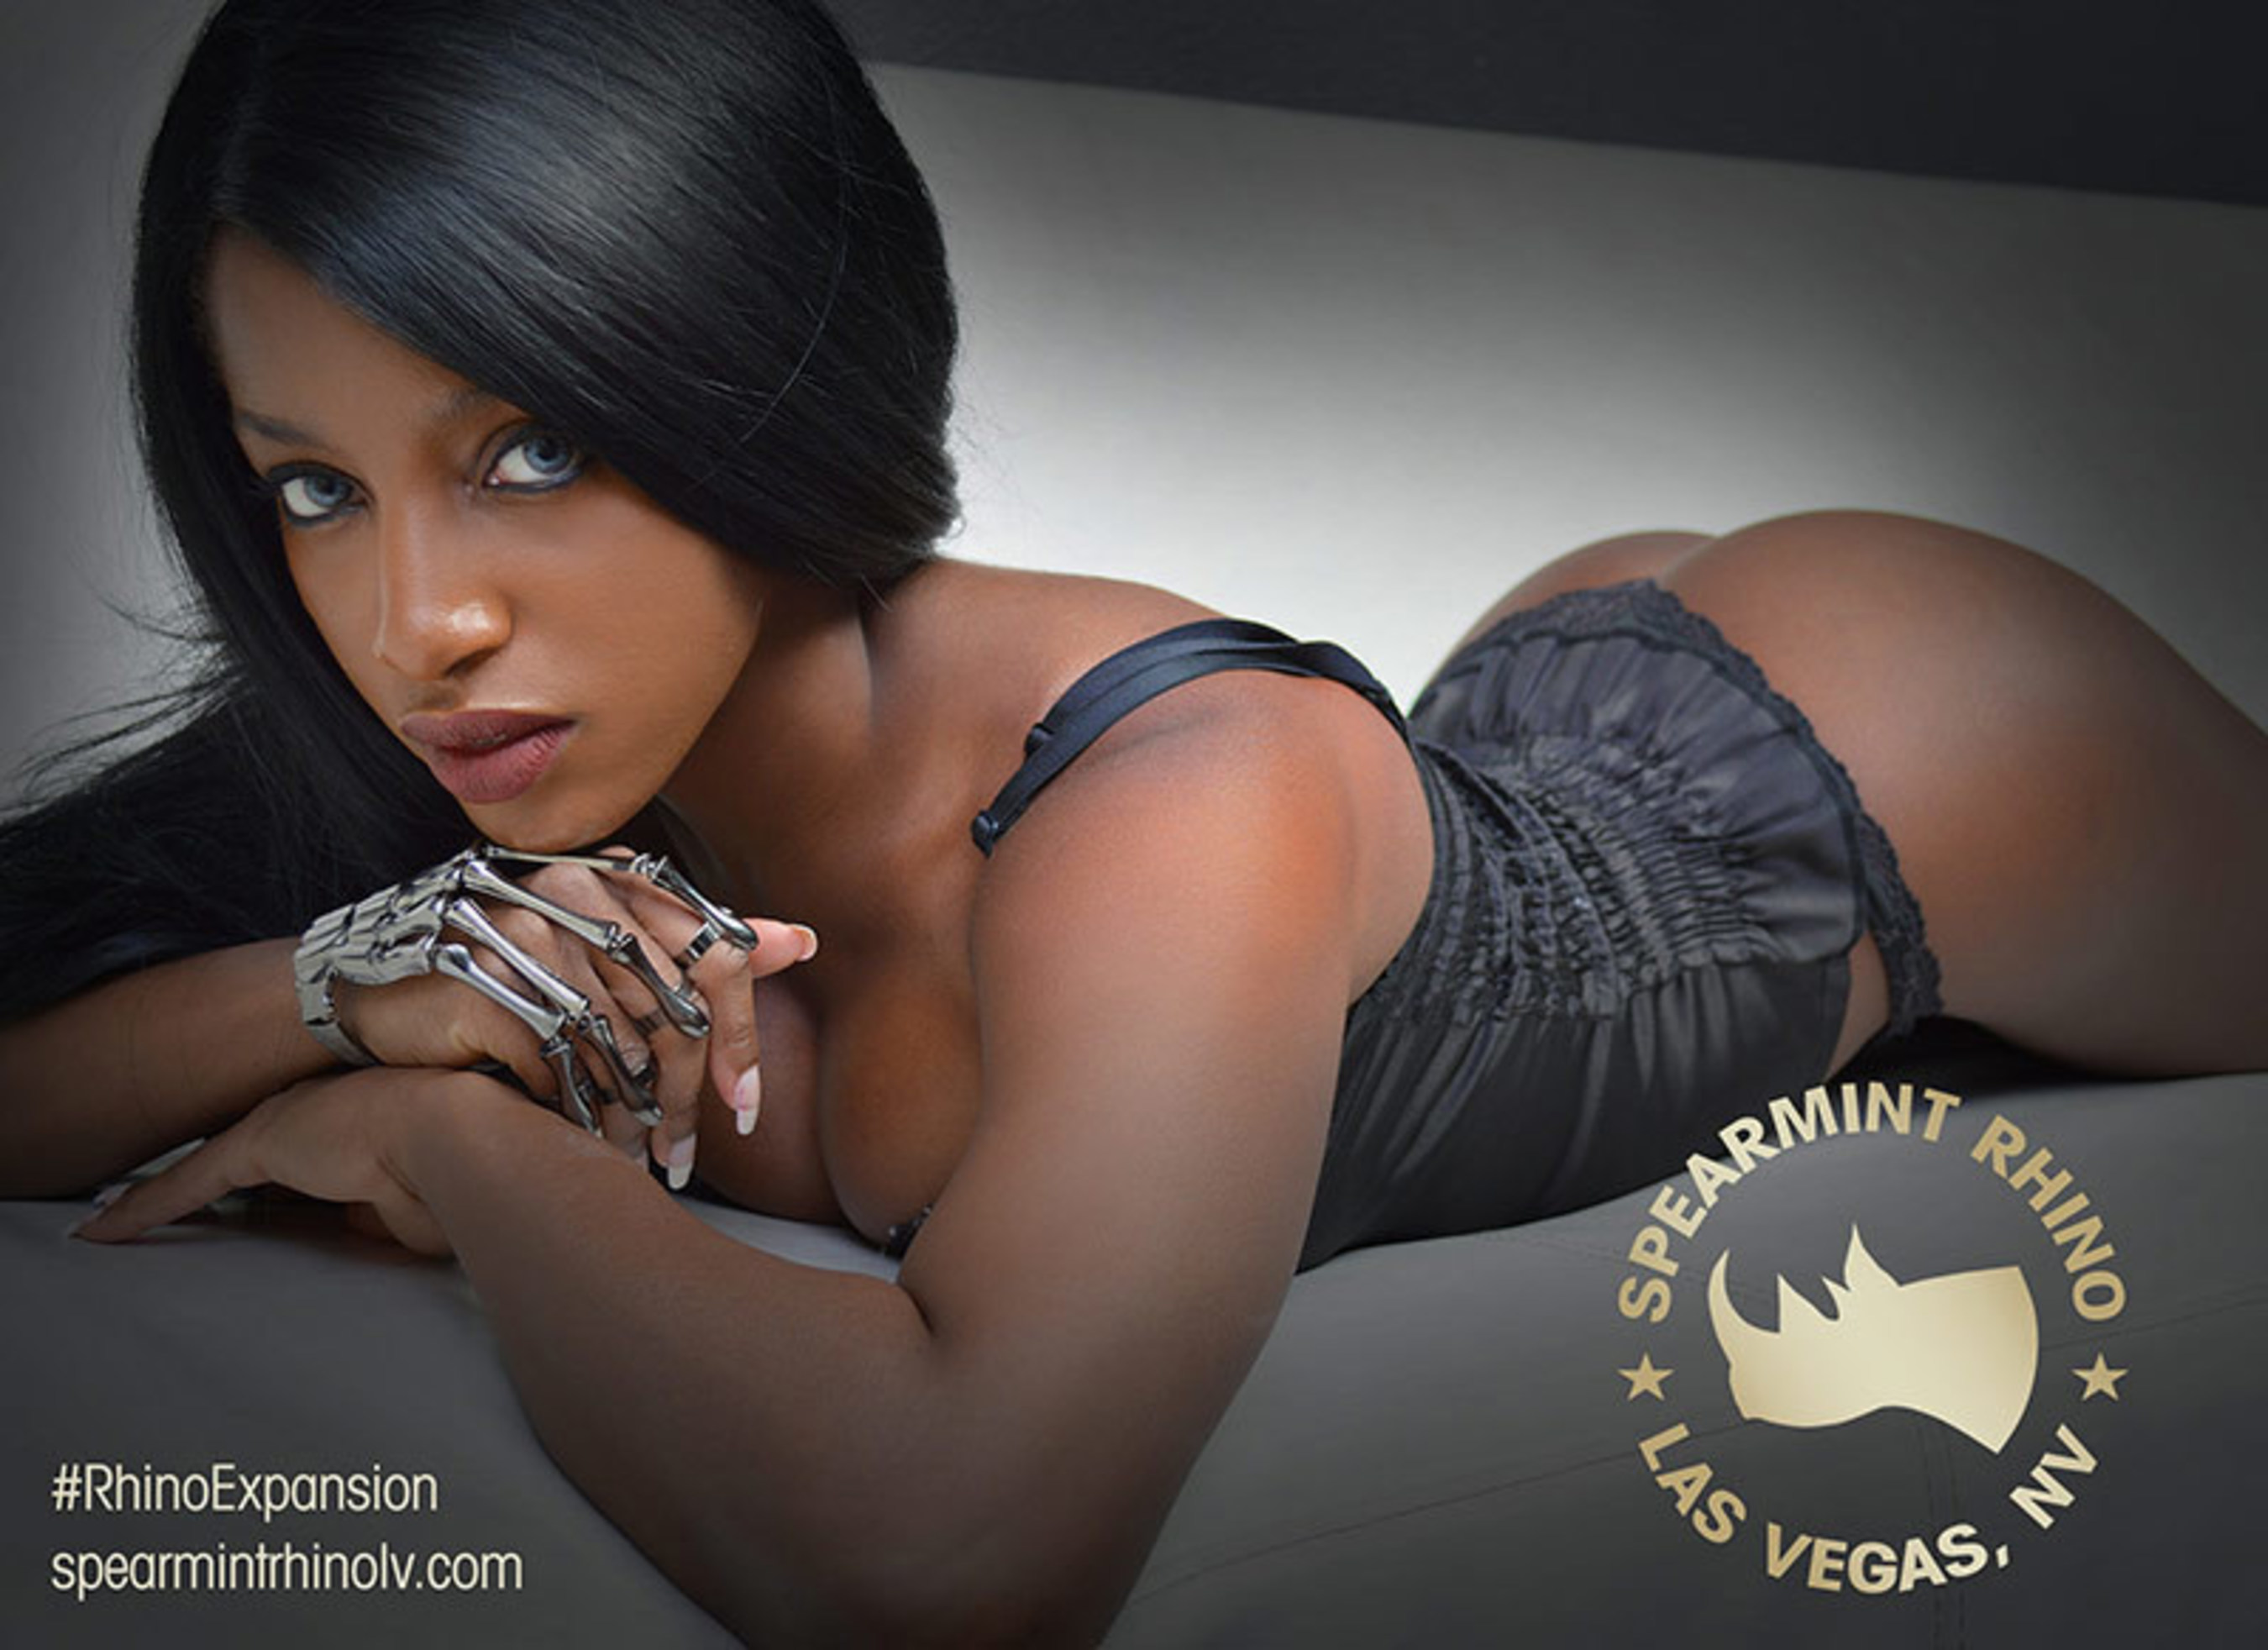 @therhinolv Featuring the hottest entertainers in Vegas